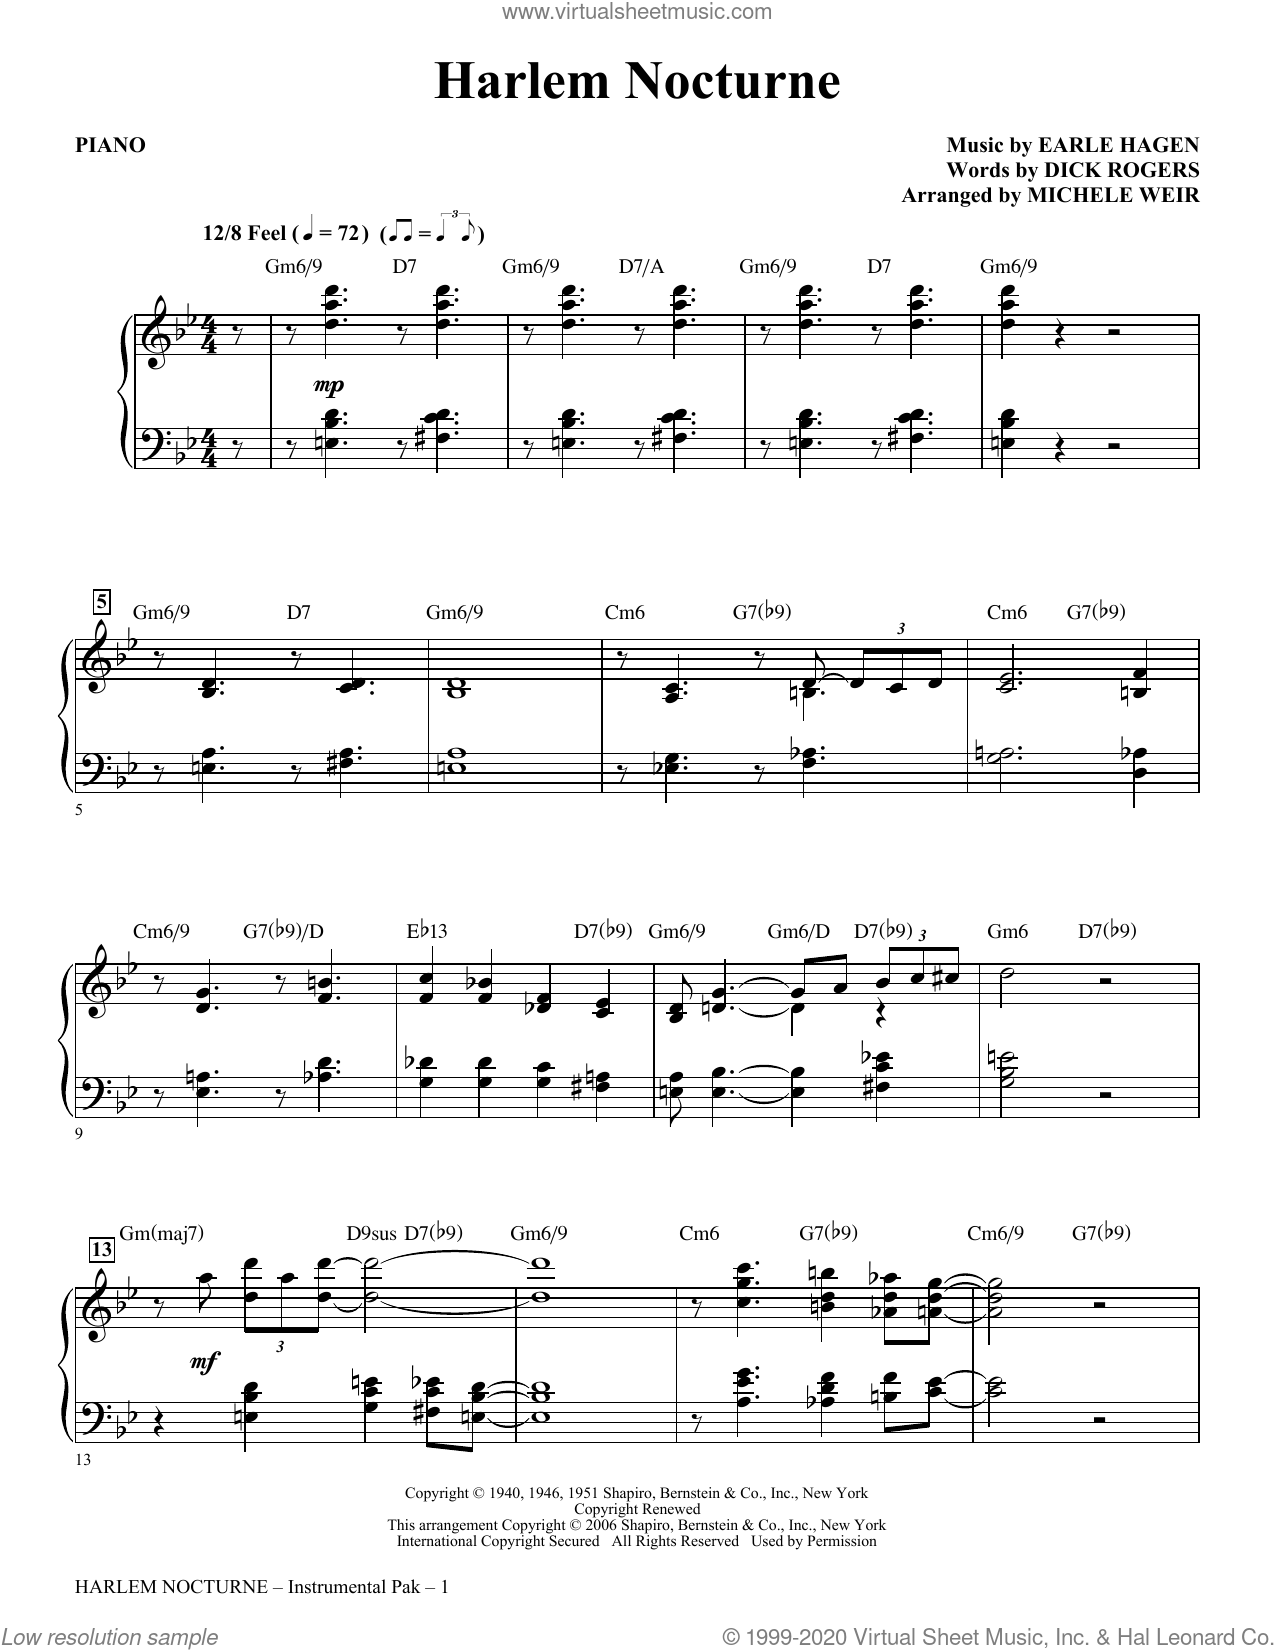 Harlem Nocturne (arr. Michele Weir) (complete set of parts) sheet music for orchestra/band (Rhythm) by Dick Rogers, Earle Hagen, Earle Hagen and Dick Rogers and Michelle Weir, intermediate skill level